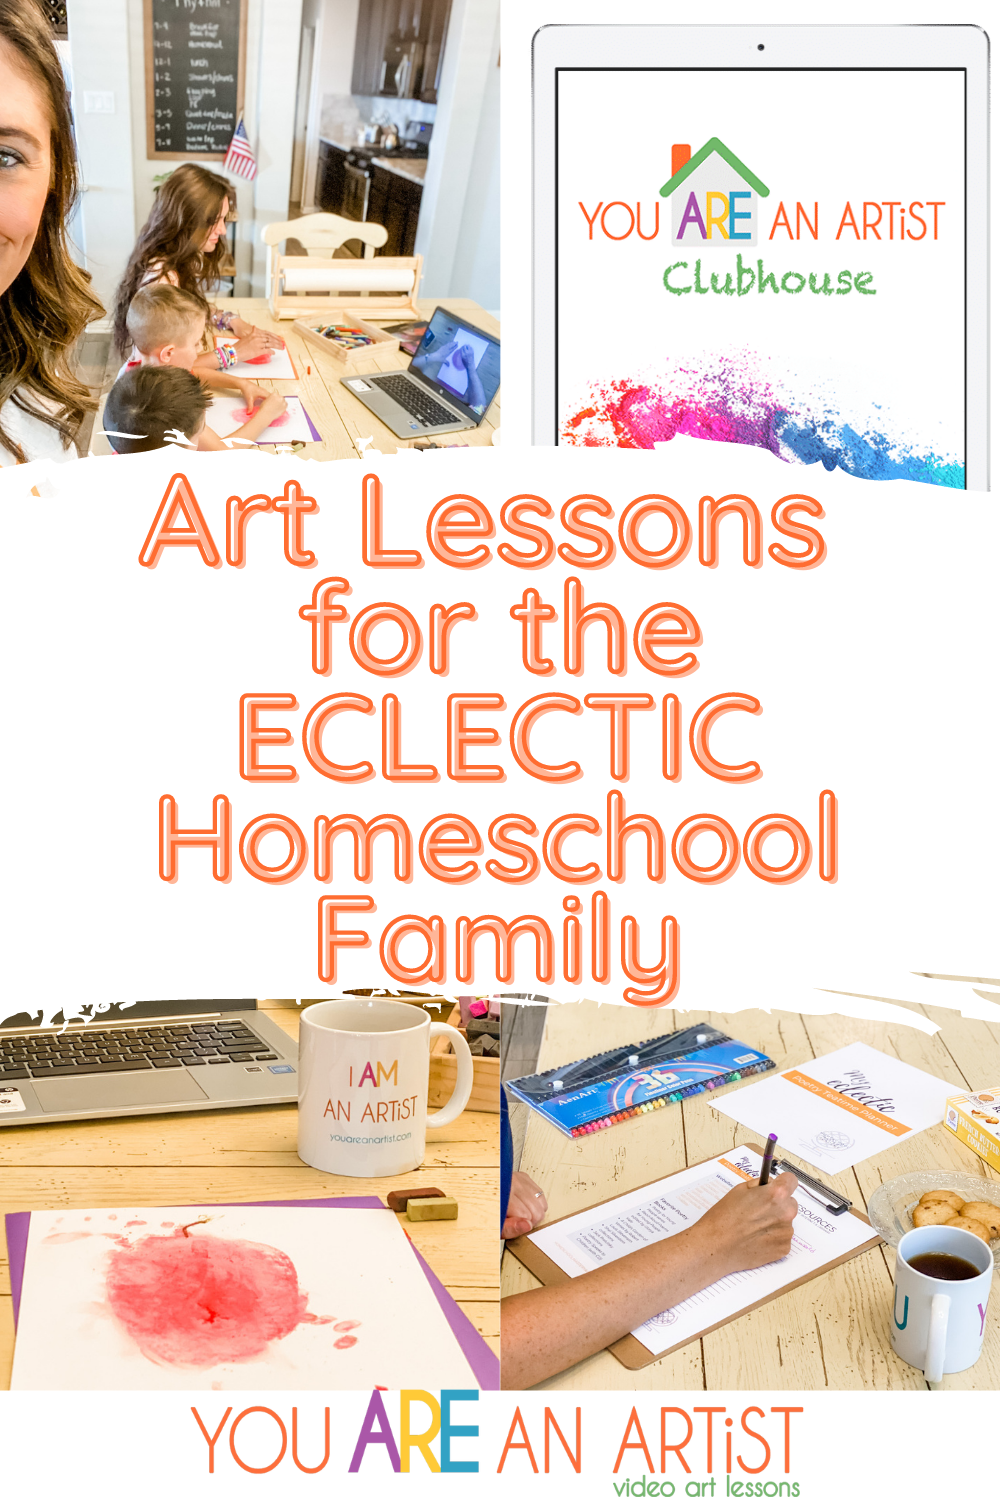 An eclectic homeschool is perfect for incorporating art! You can easily add art into practically any lesson, and your kids will thank you. #homeschoolart #eclectichomeschooling #homeschoolartlessons